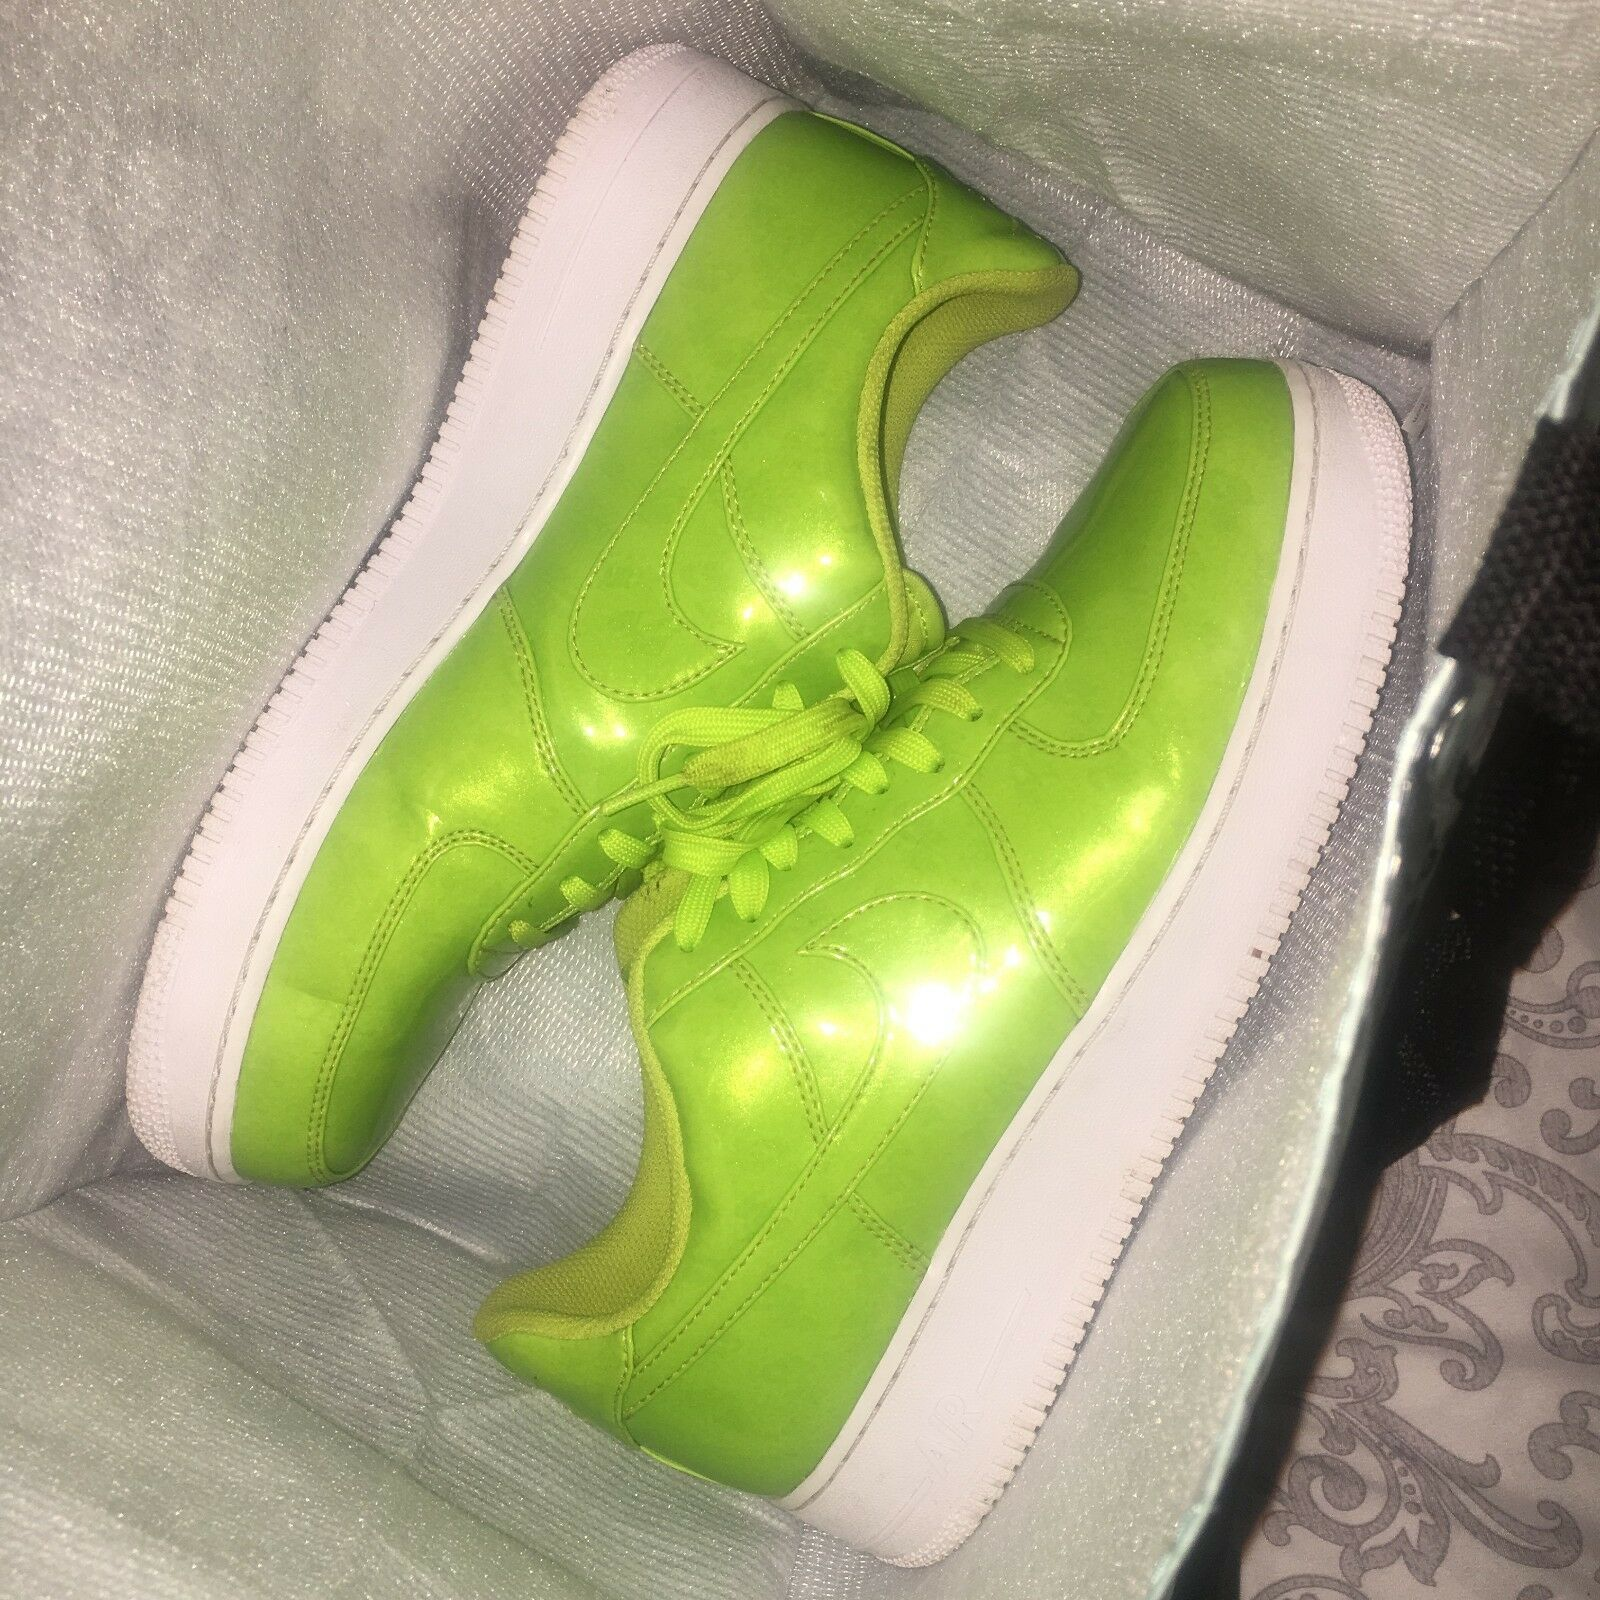 NIKE AIR FORCE 1 LOW PATENT LEATHER BRIGHT VOLT size 10.5